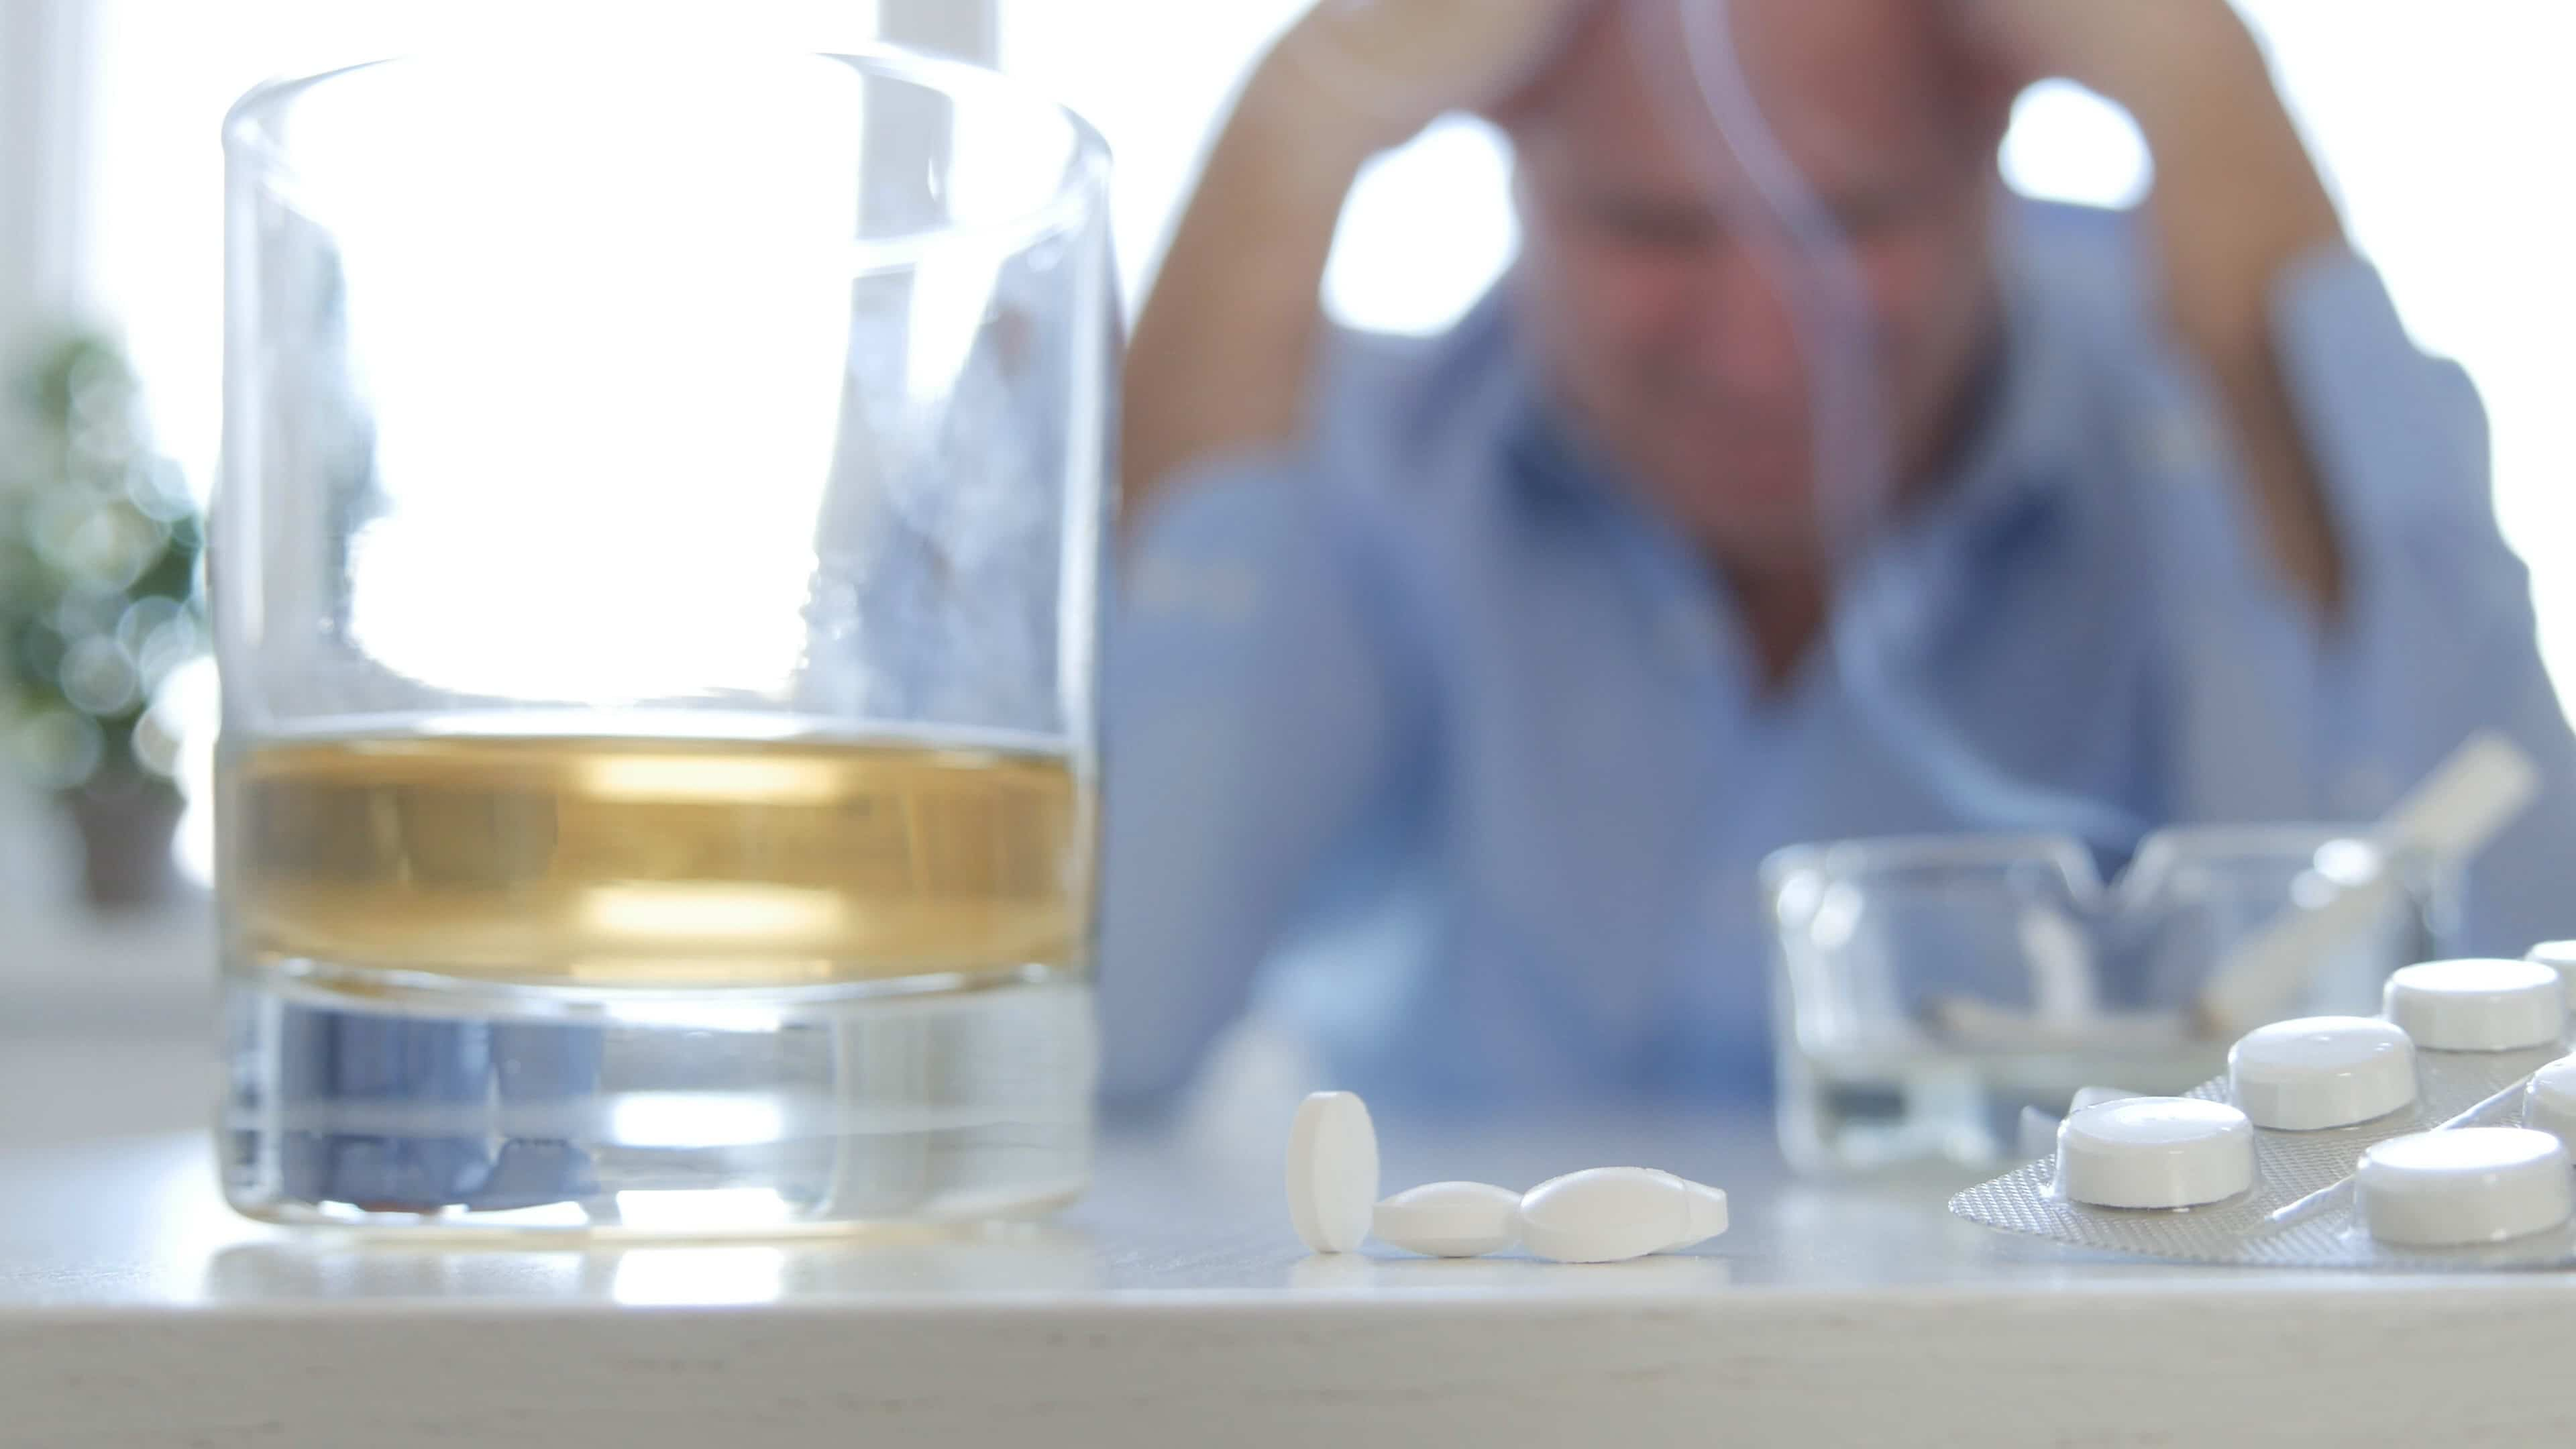 Dangers Of Mixing Xanax And Alcohol